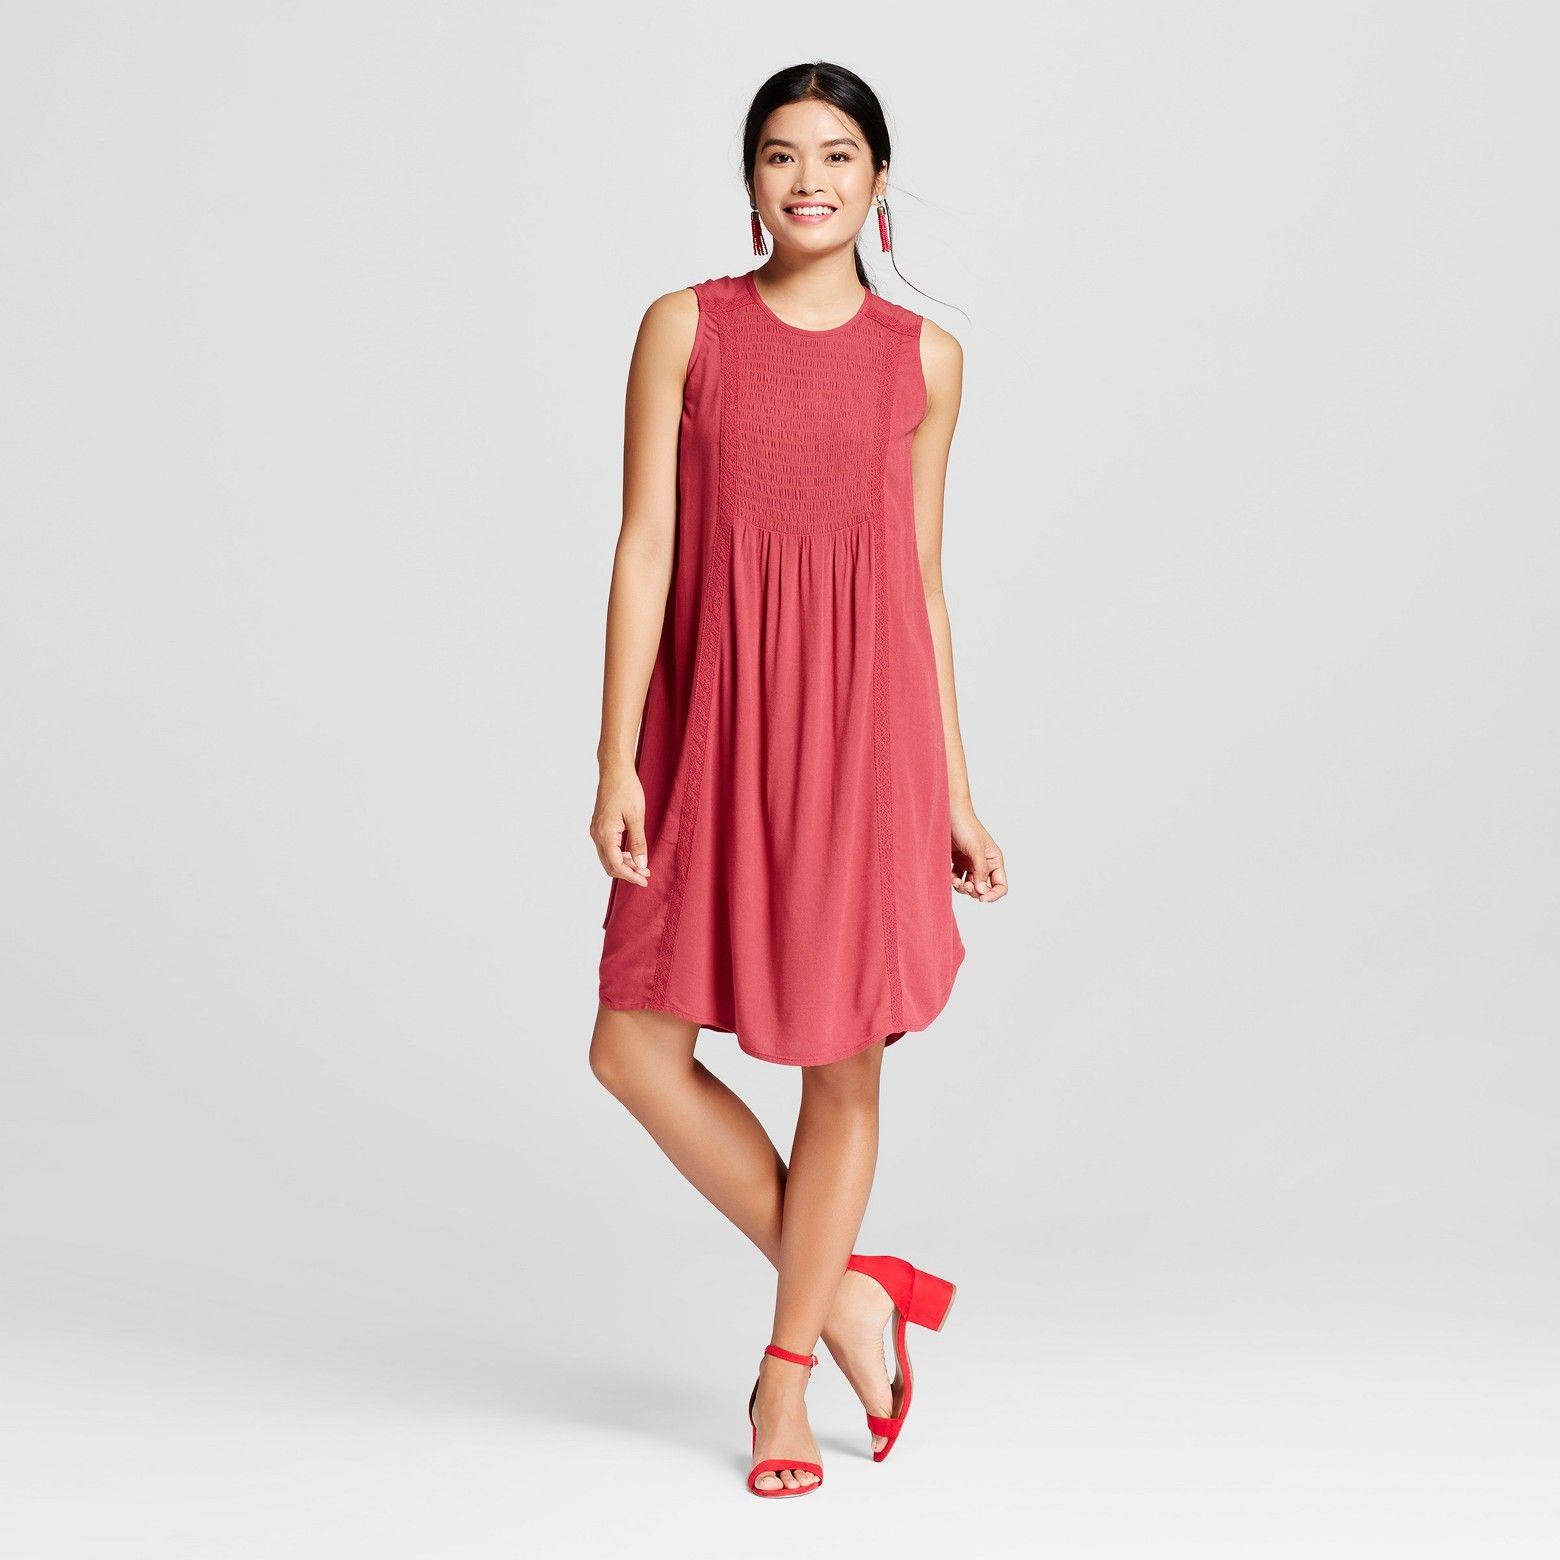 a71780cf594 Add a sense of casual comfort this summer with the Smocked Front Shift Dress  from Knox